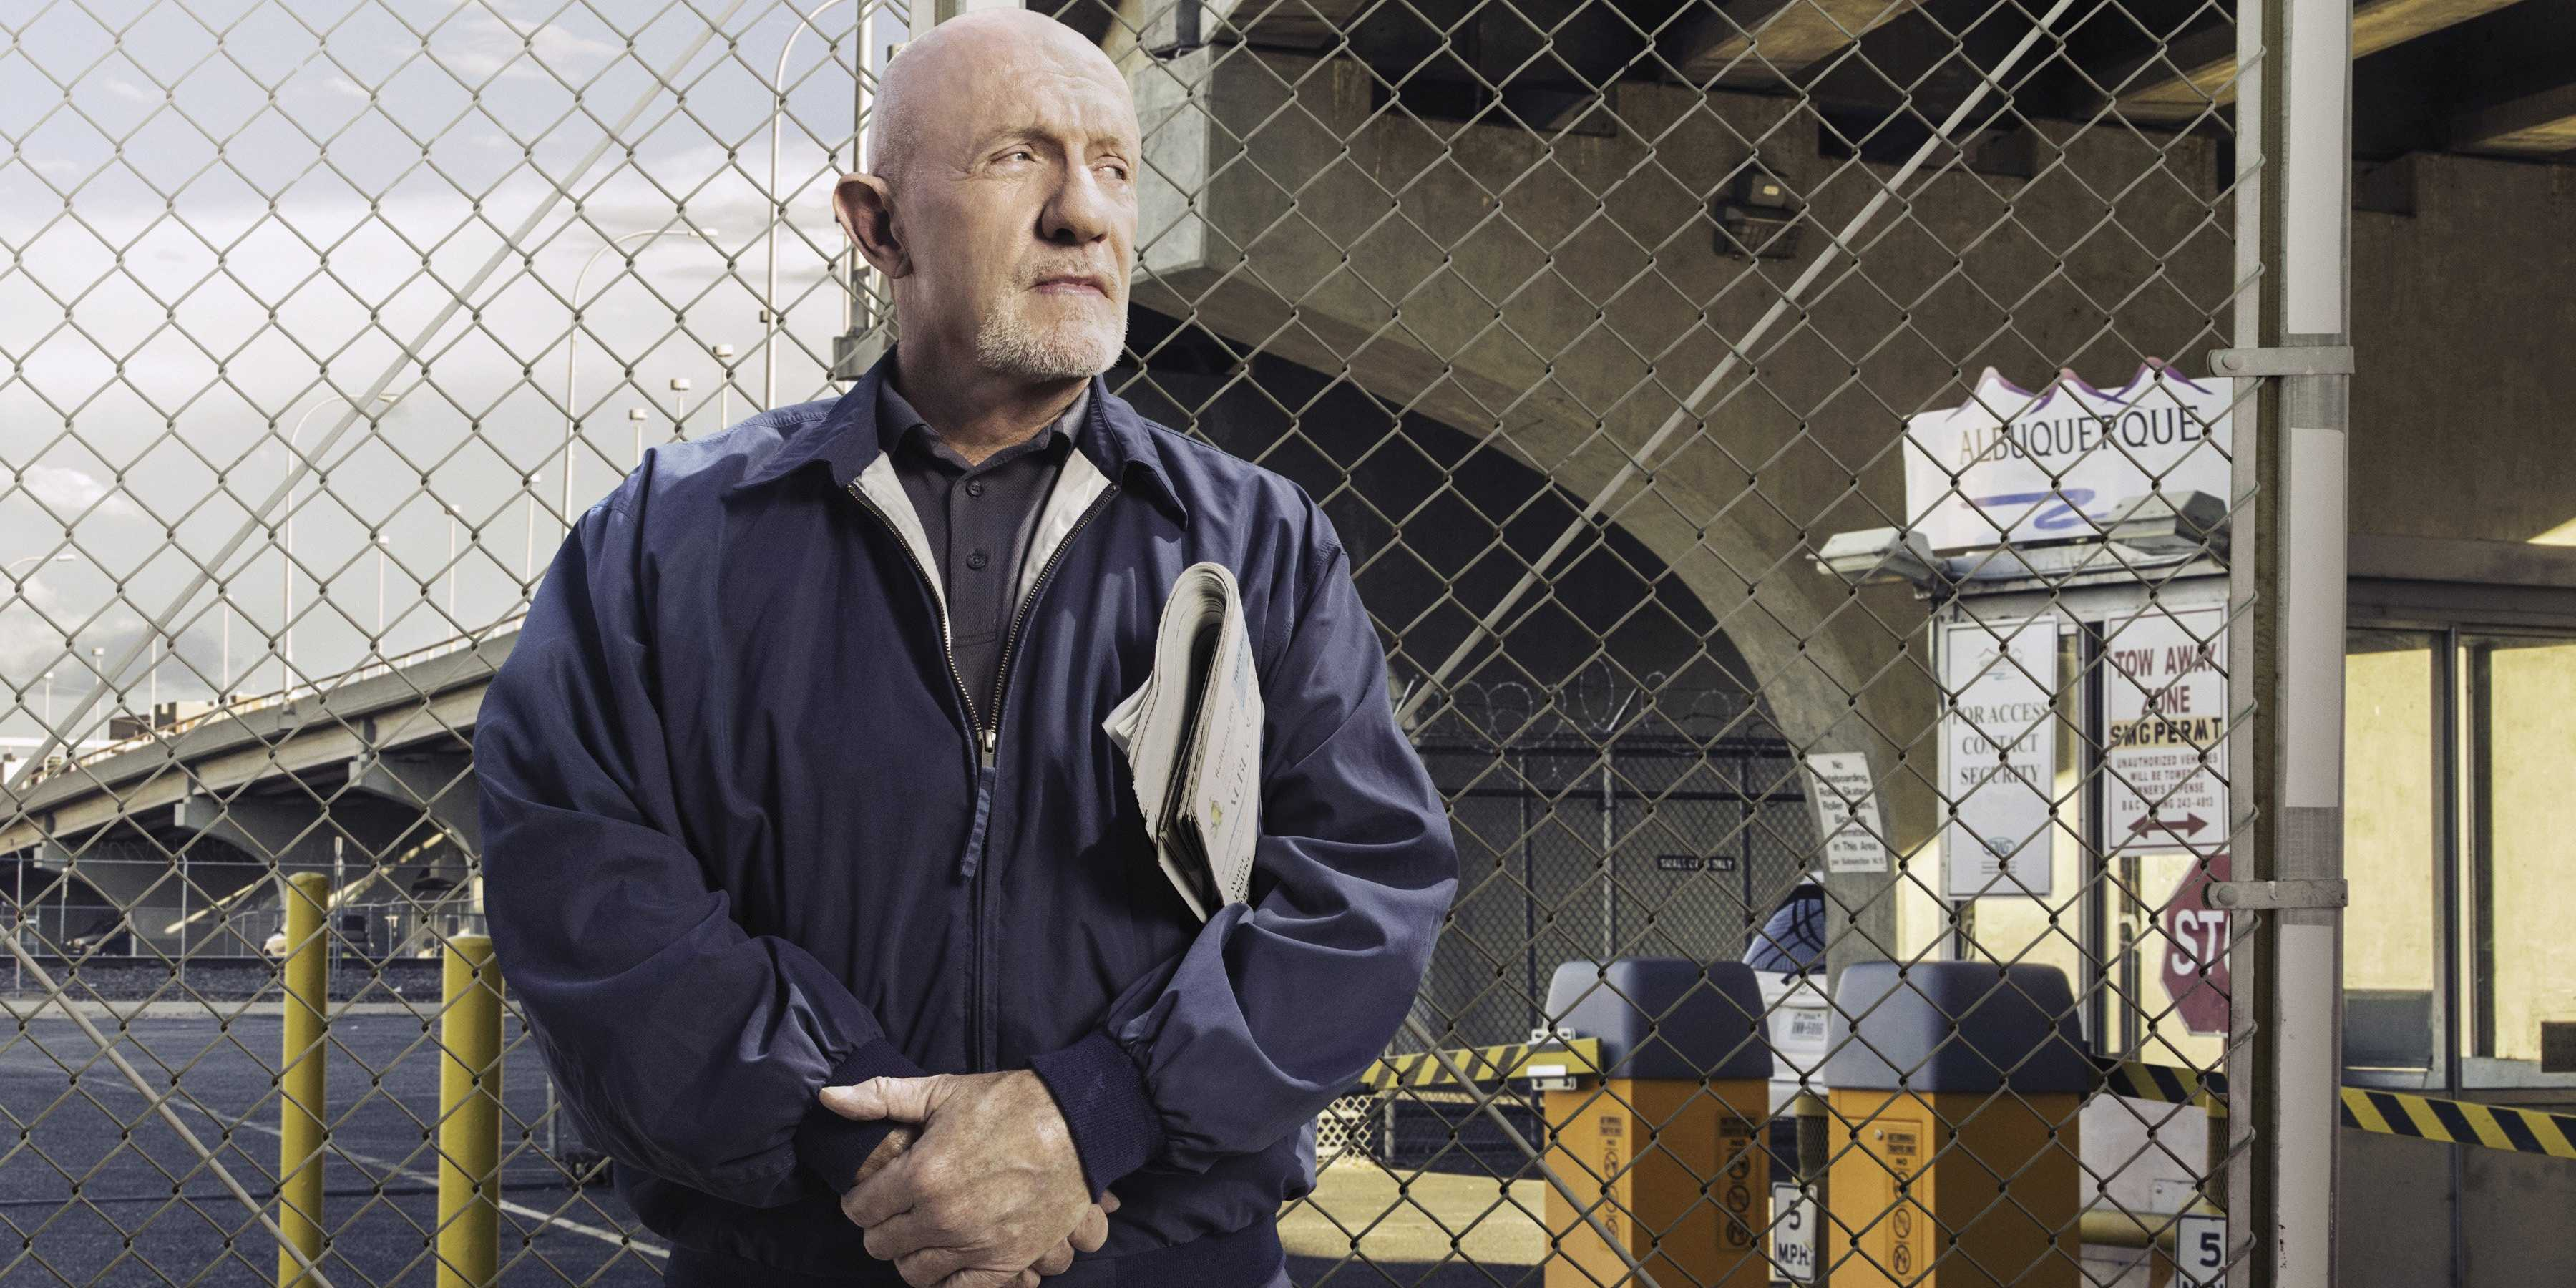 Personnage better call saul mike